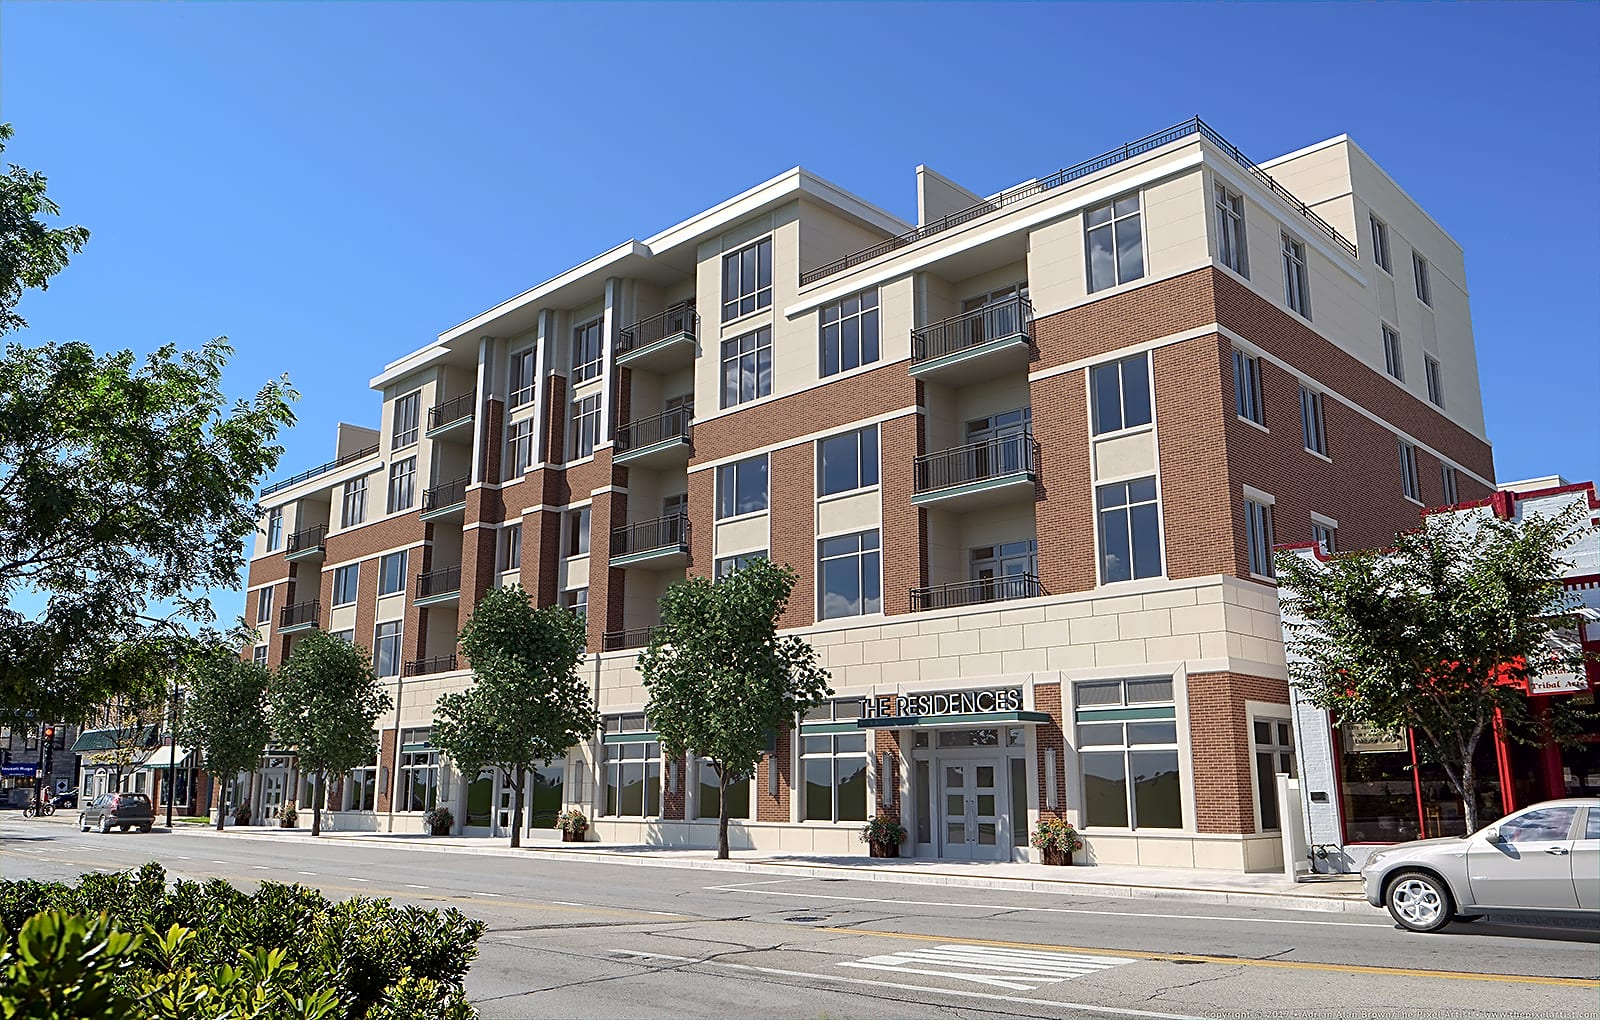 The Residences of Wilmette